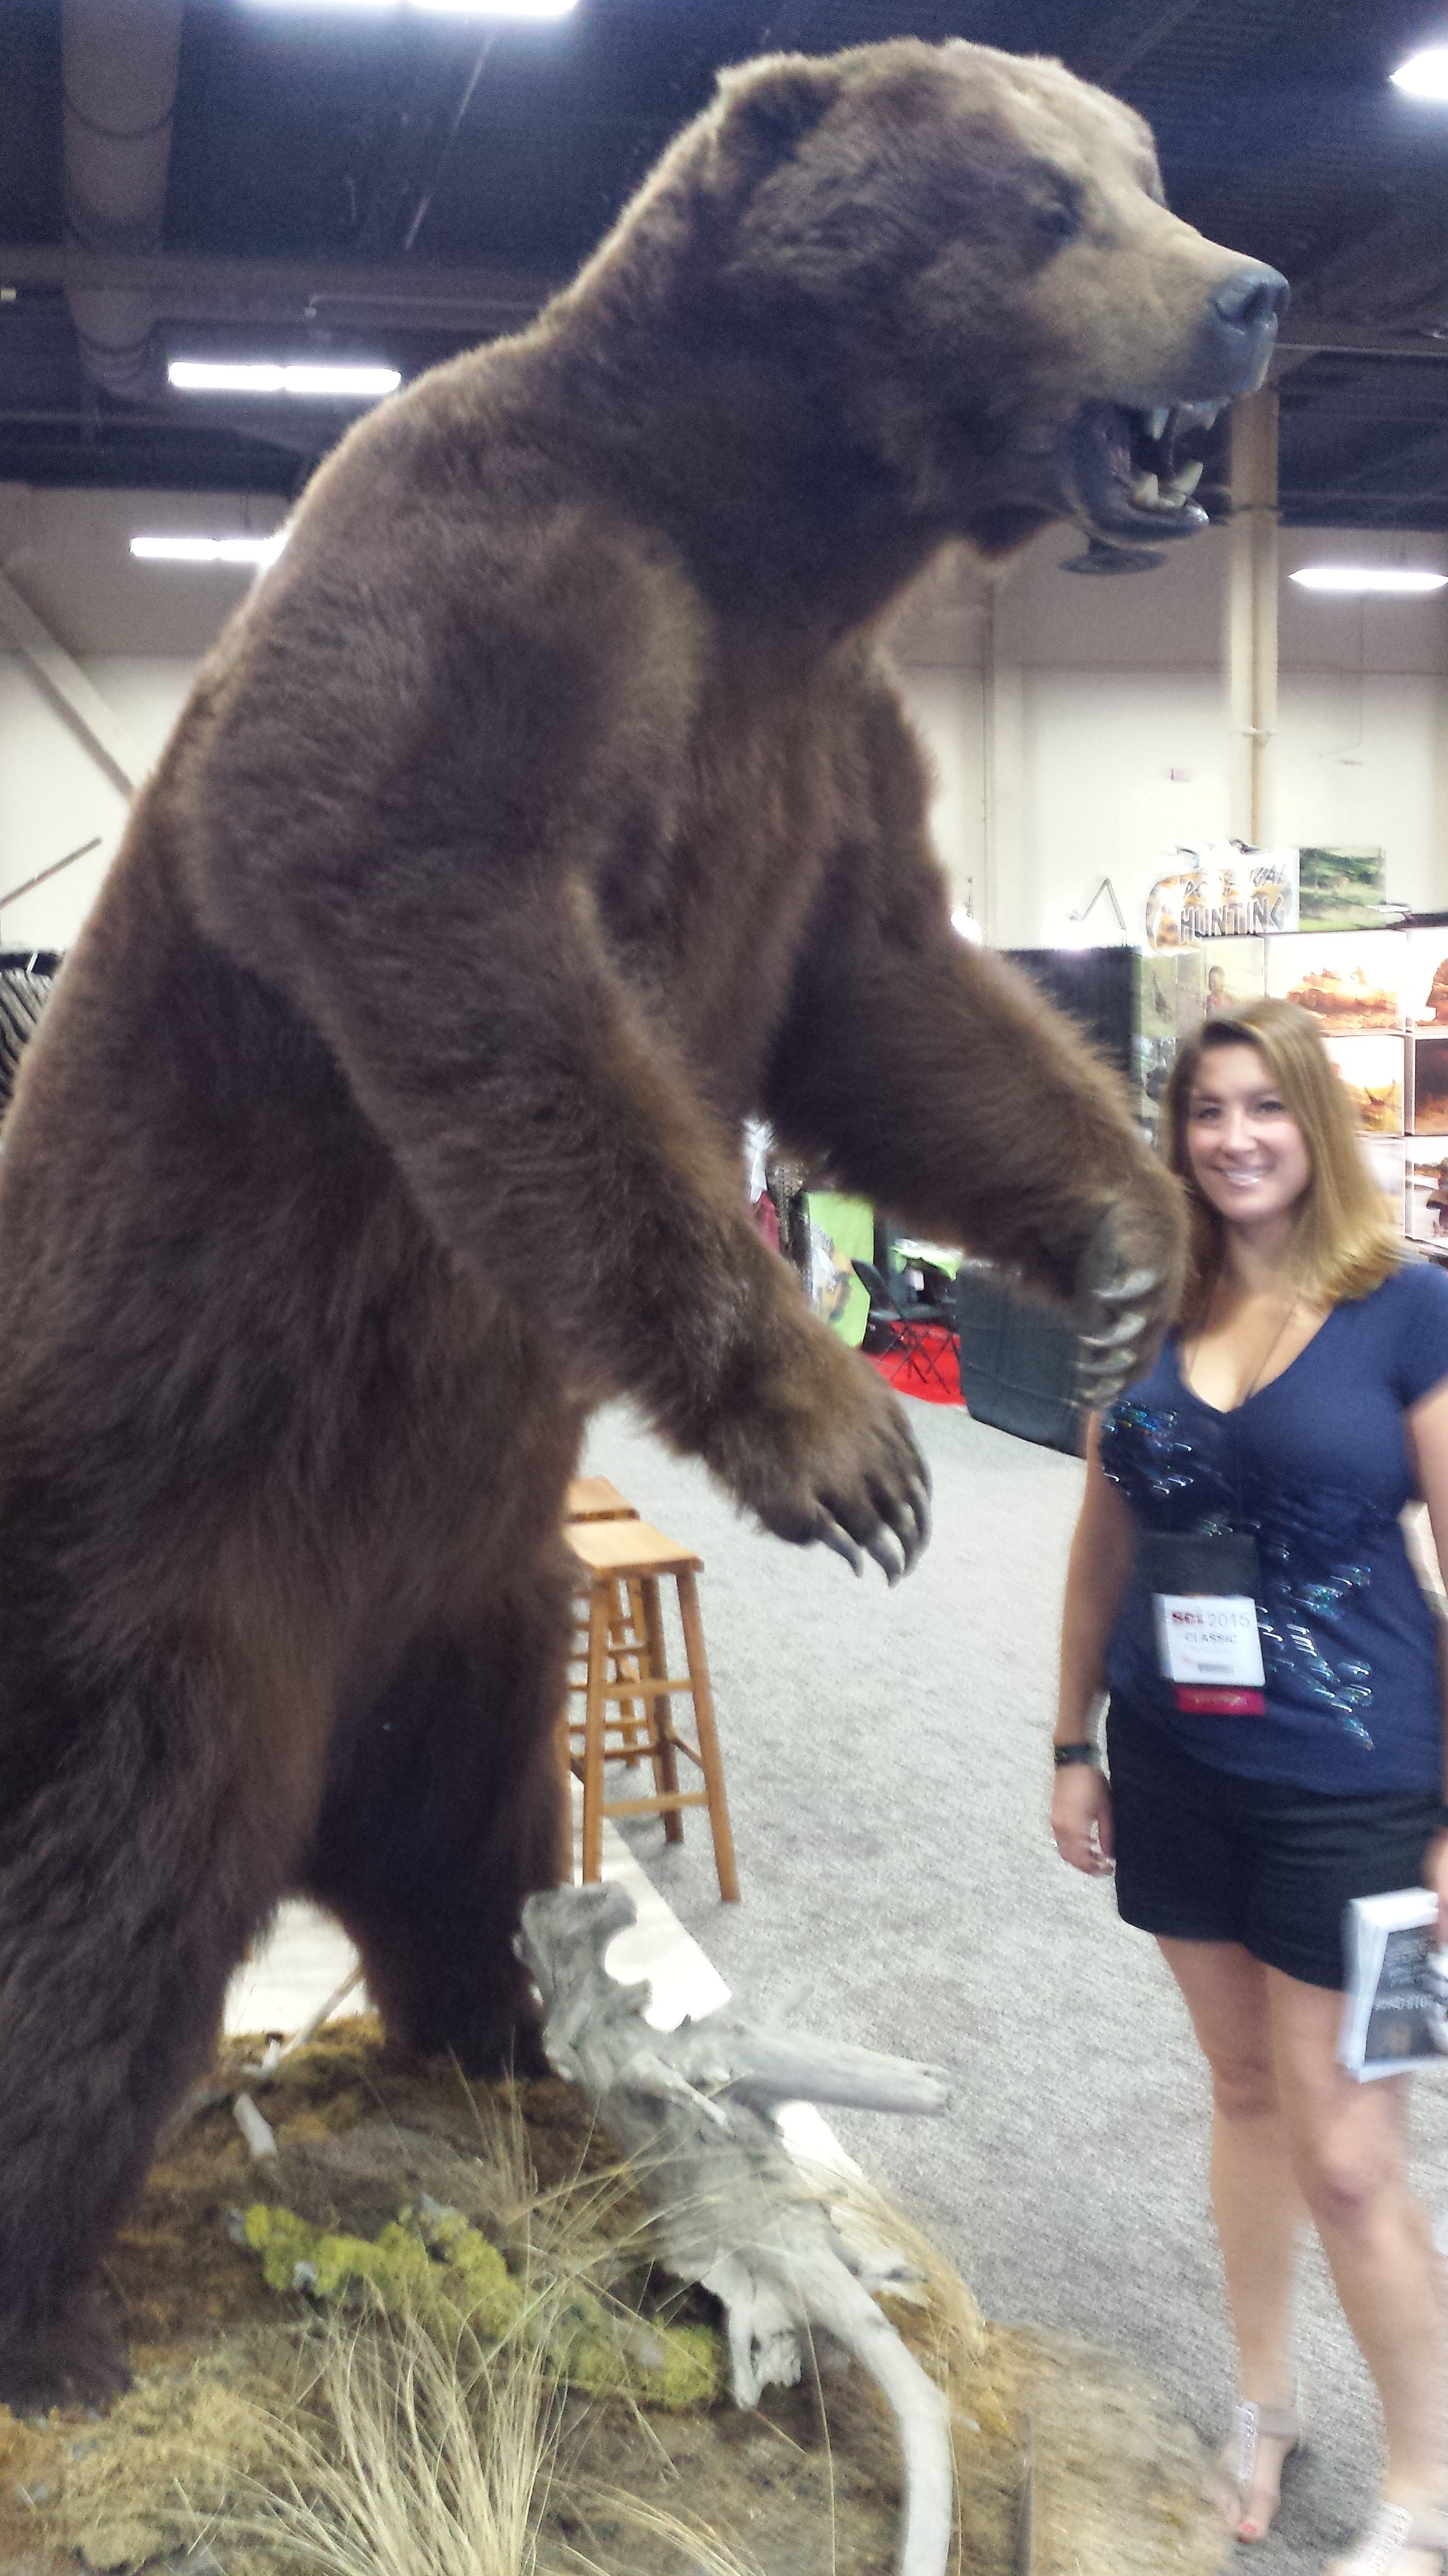 Huge Grizzly Bear at Safari Club International Convention REMEMBERING MY FIRST TIME………AT THE SAFARI CLUB INTERNATIONAL LAS VEGAS CONVENTION https://reelcamogirl.wordpress.com/2015/02/17/remembering-my-first-time-at-the-safari-club-international-las-vegas-convention/